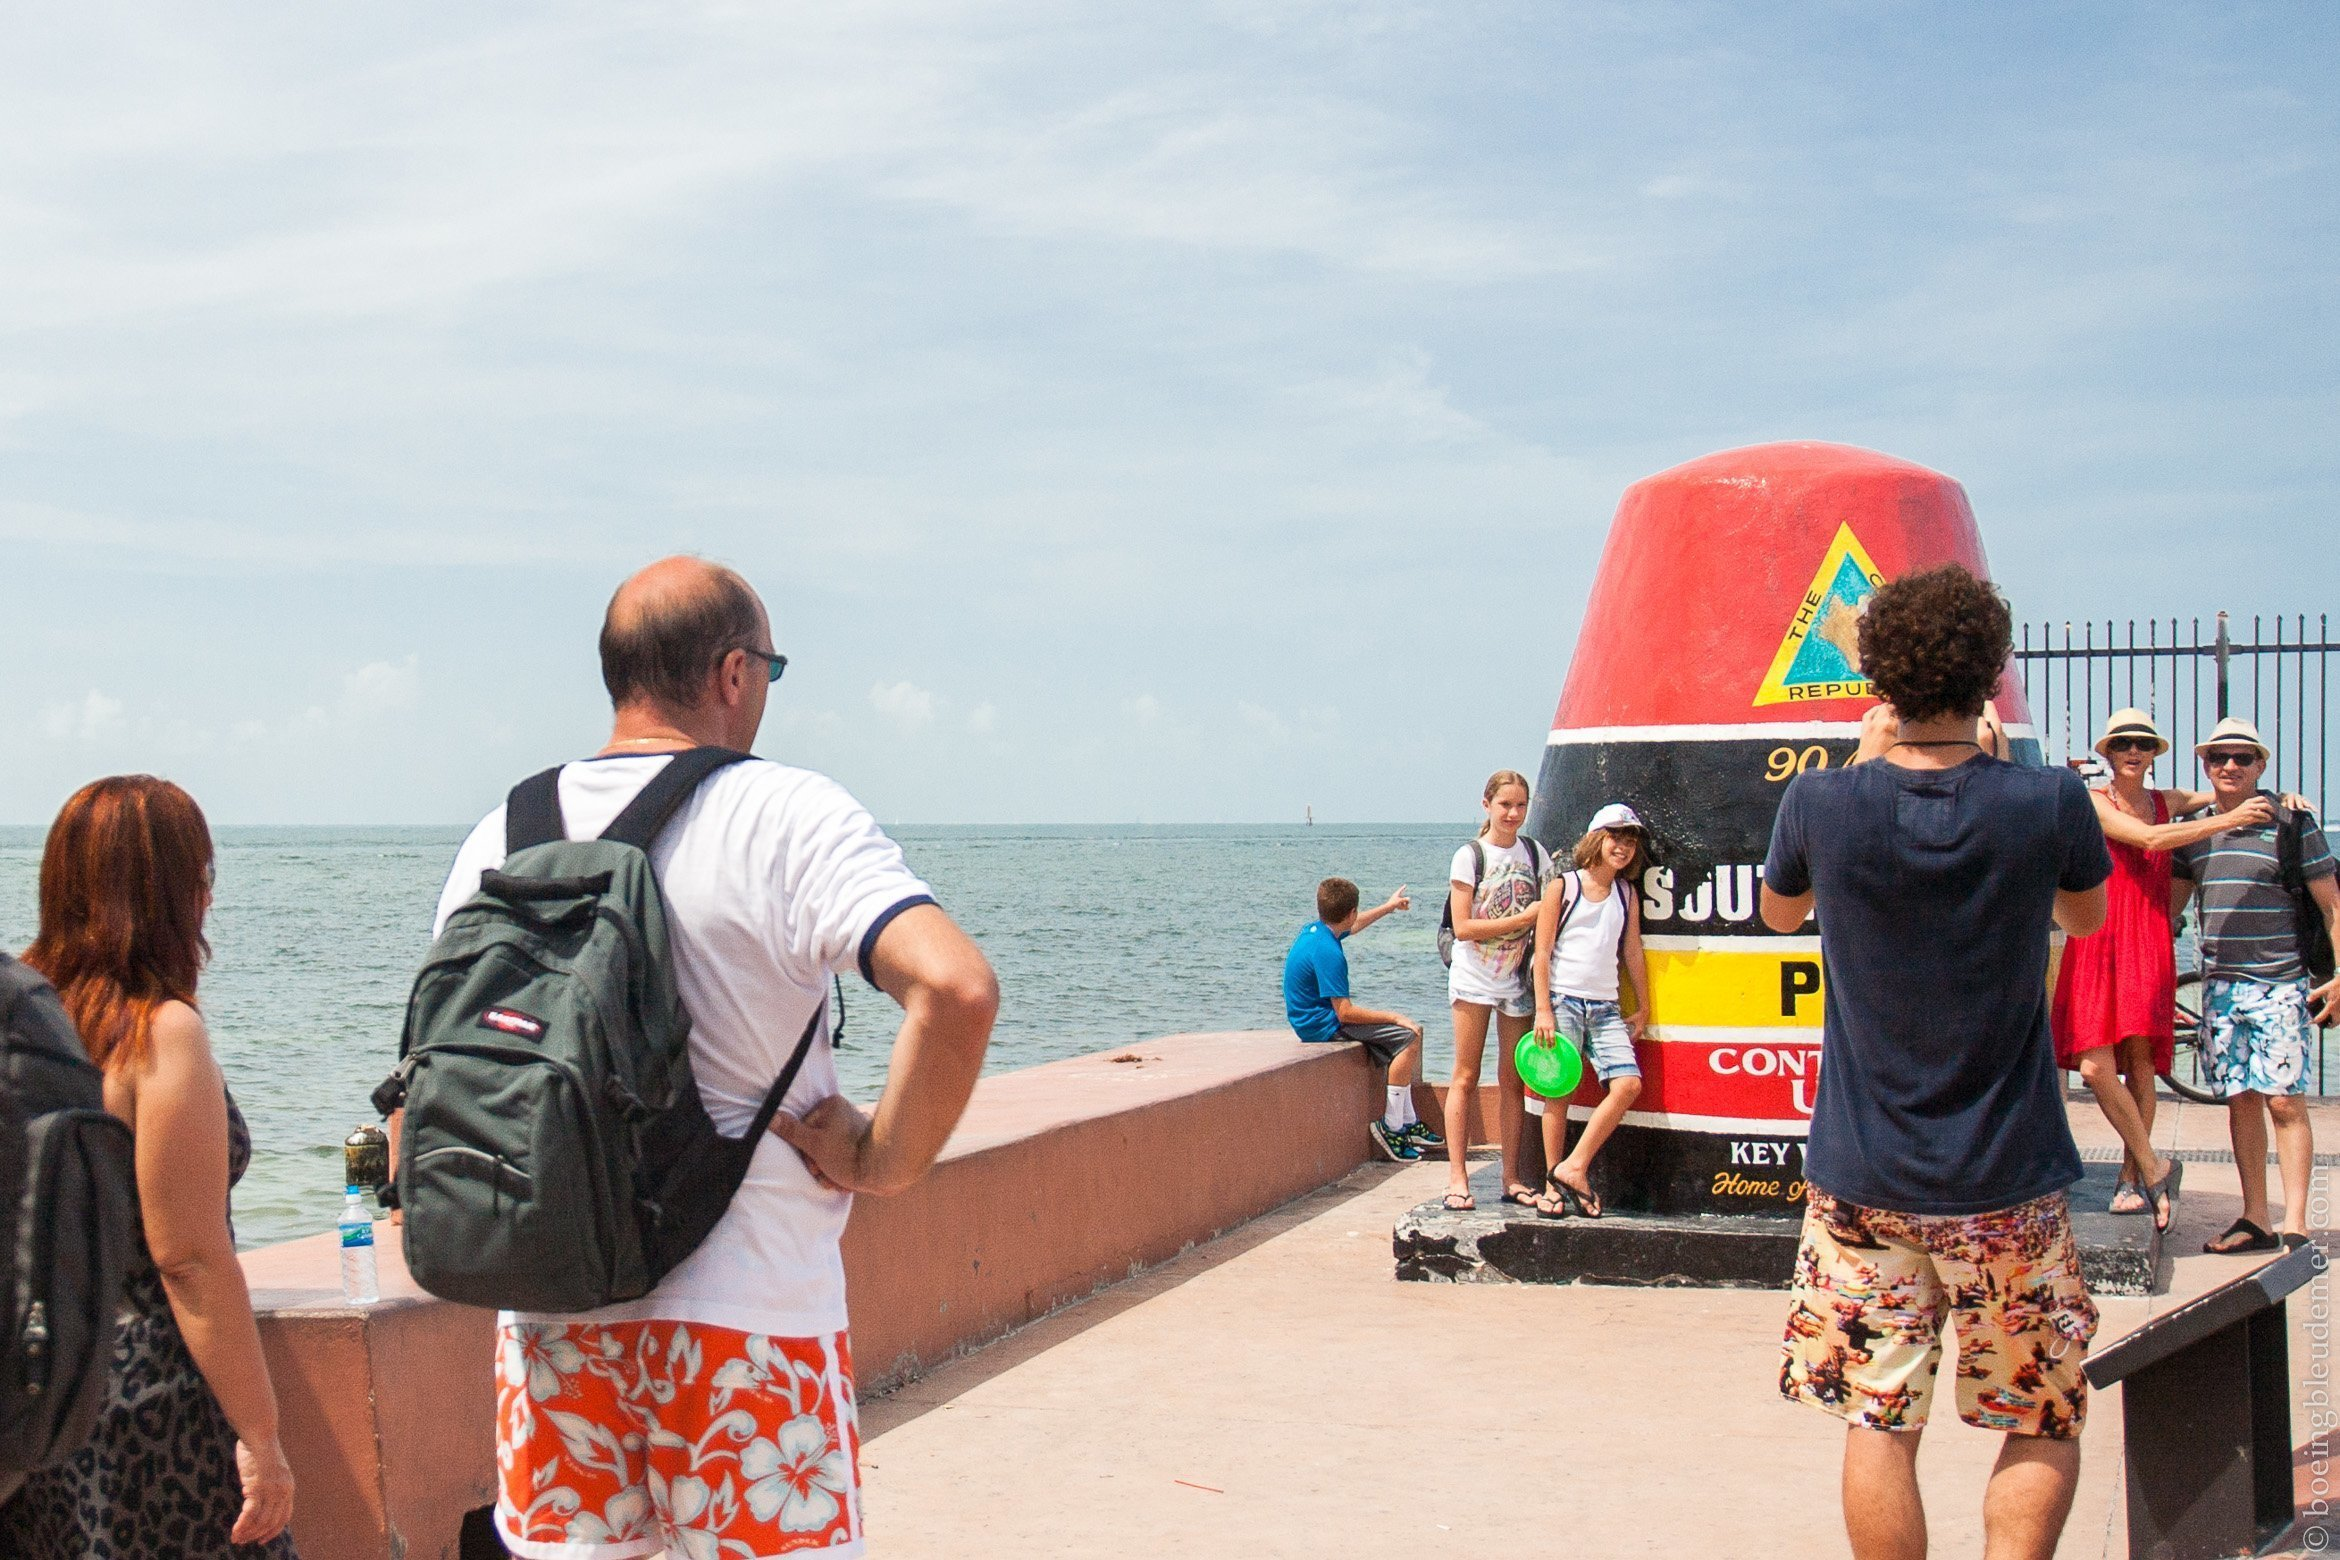 Key West, Southermost point